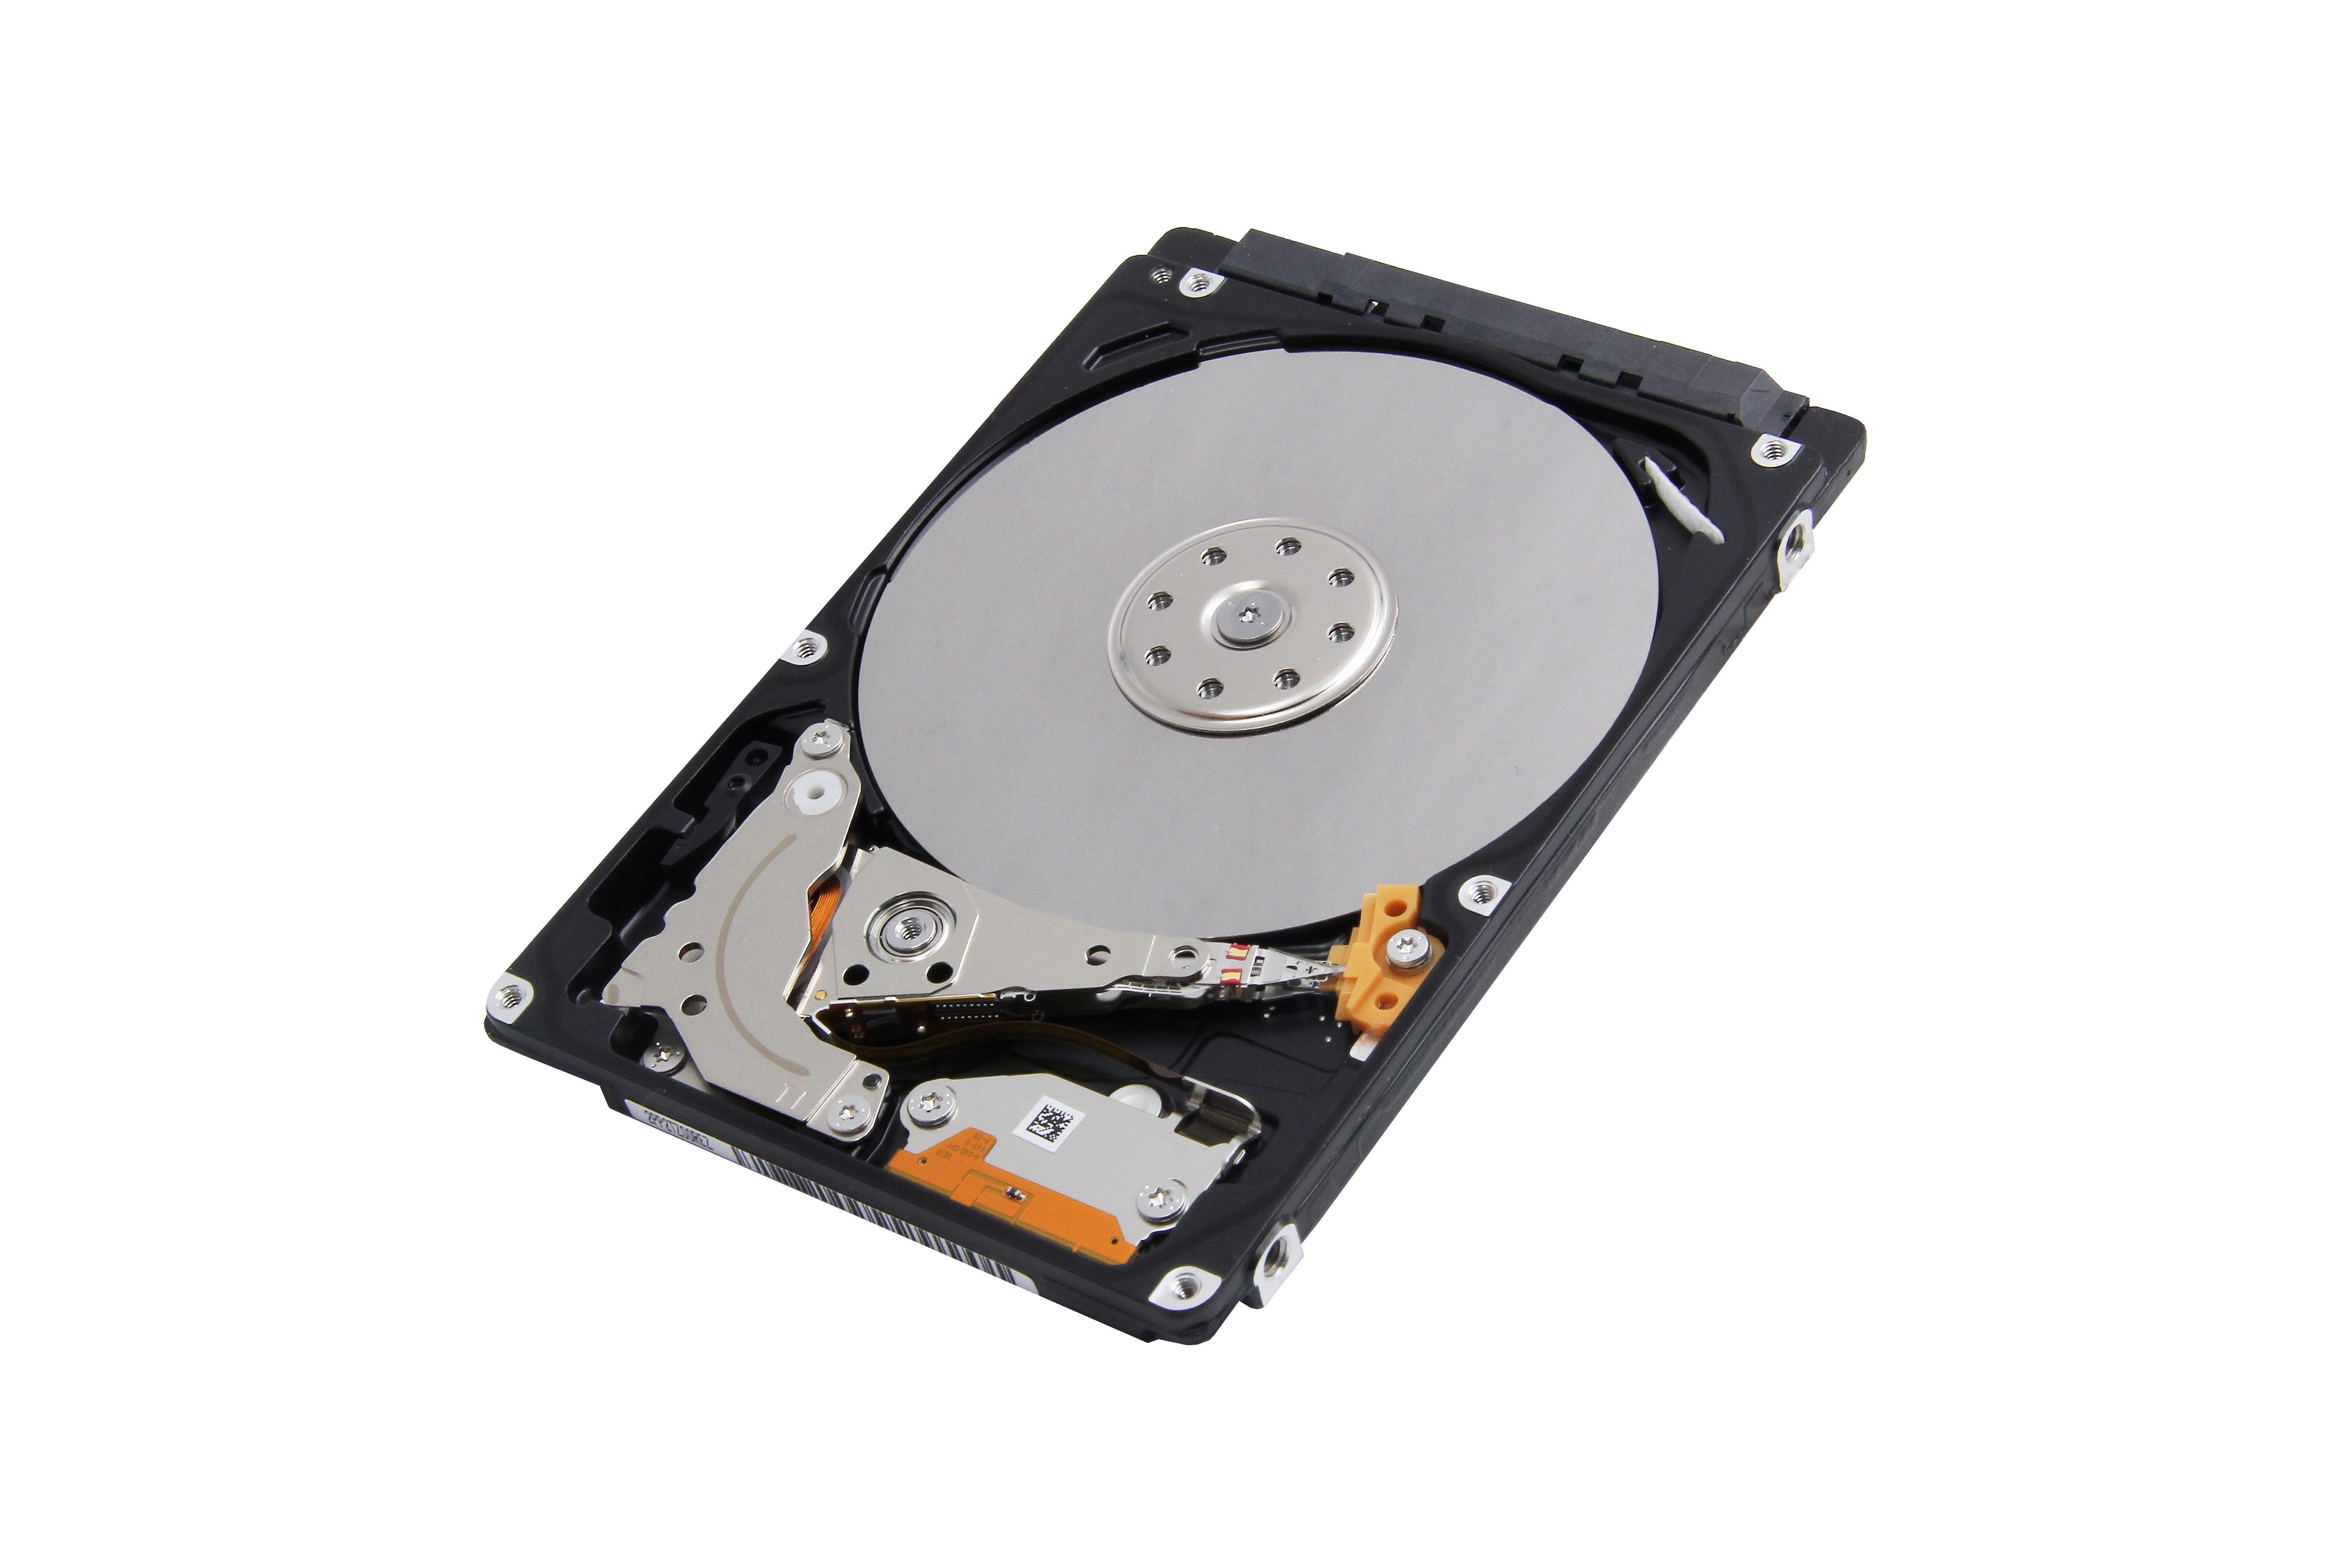 The importance of hdd to the electronics industry